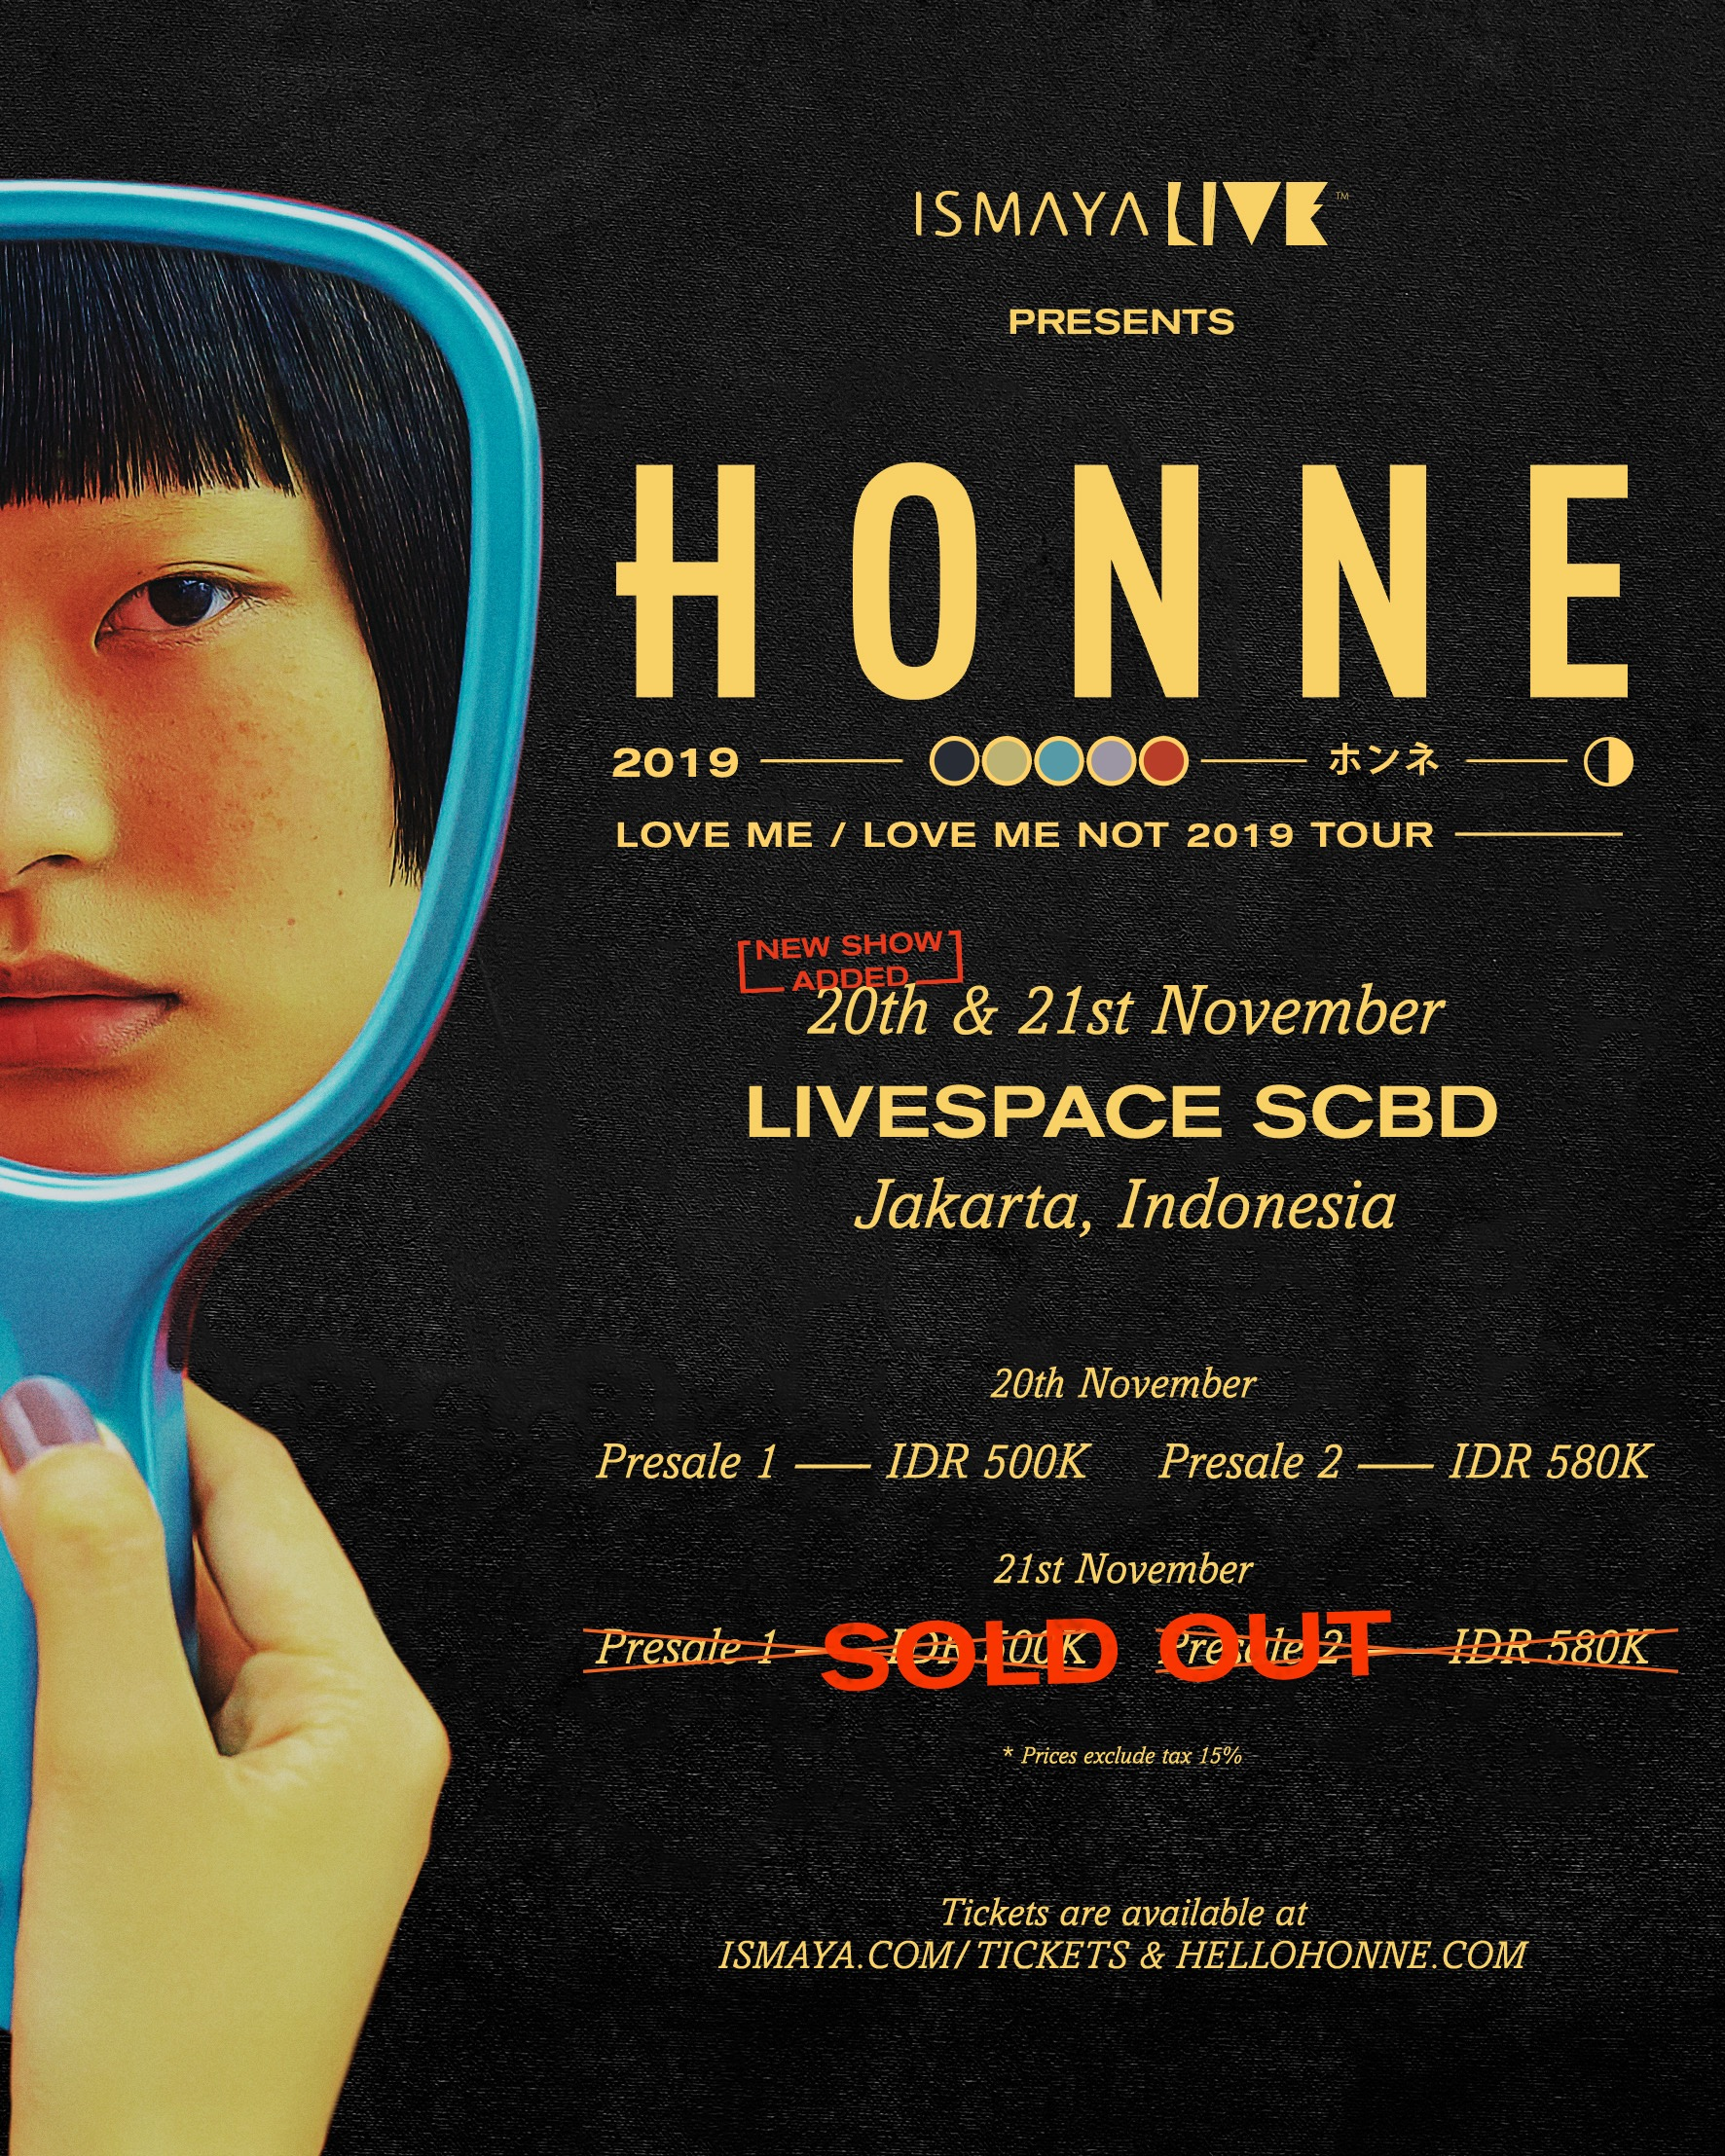 HONNE - Artwork - Main Artwork.jpg